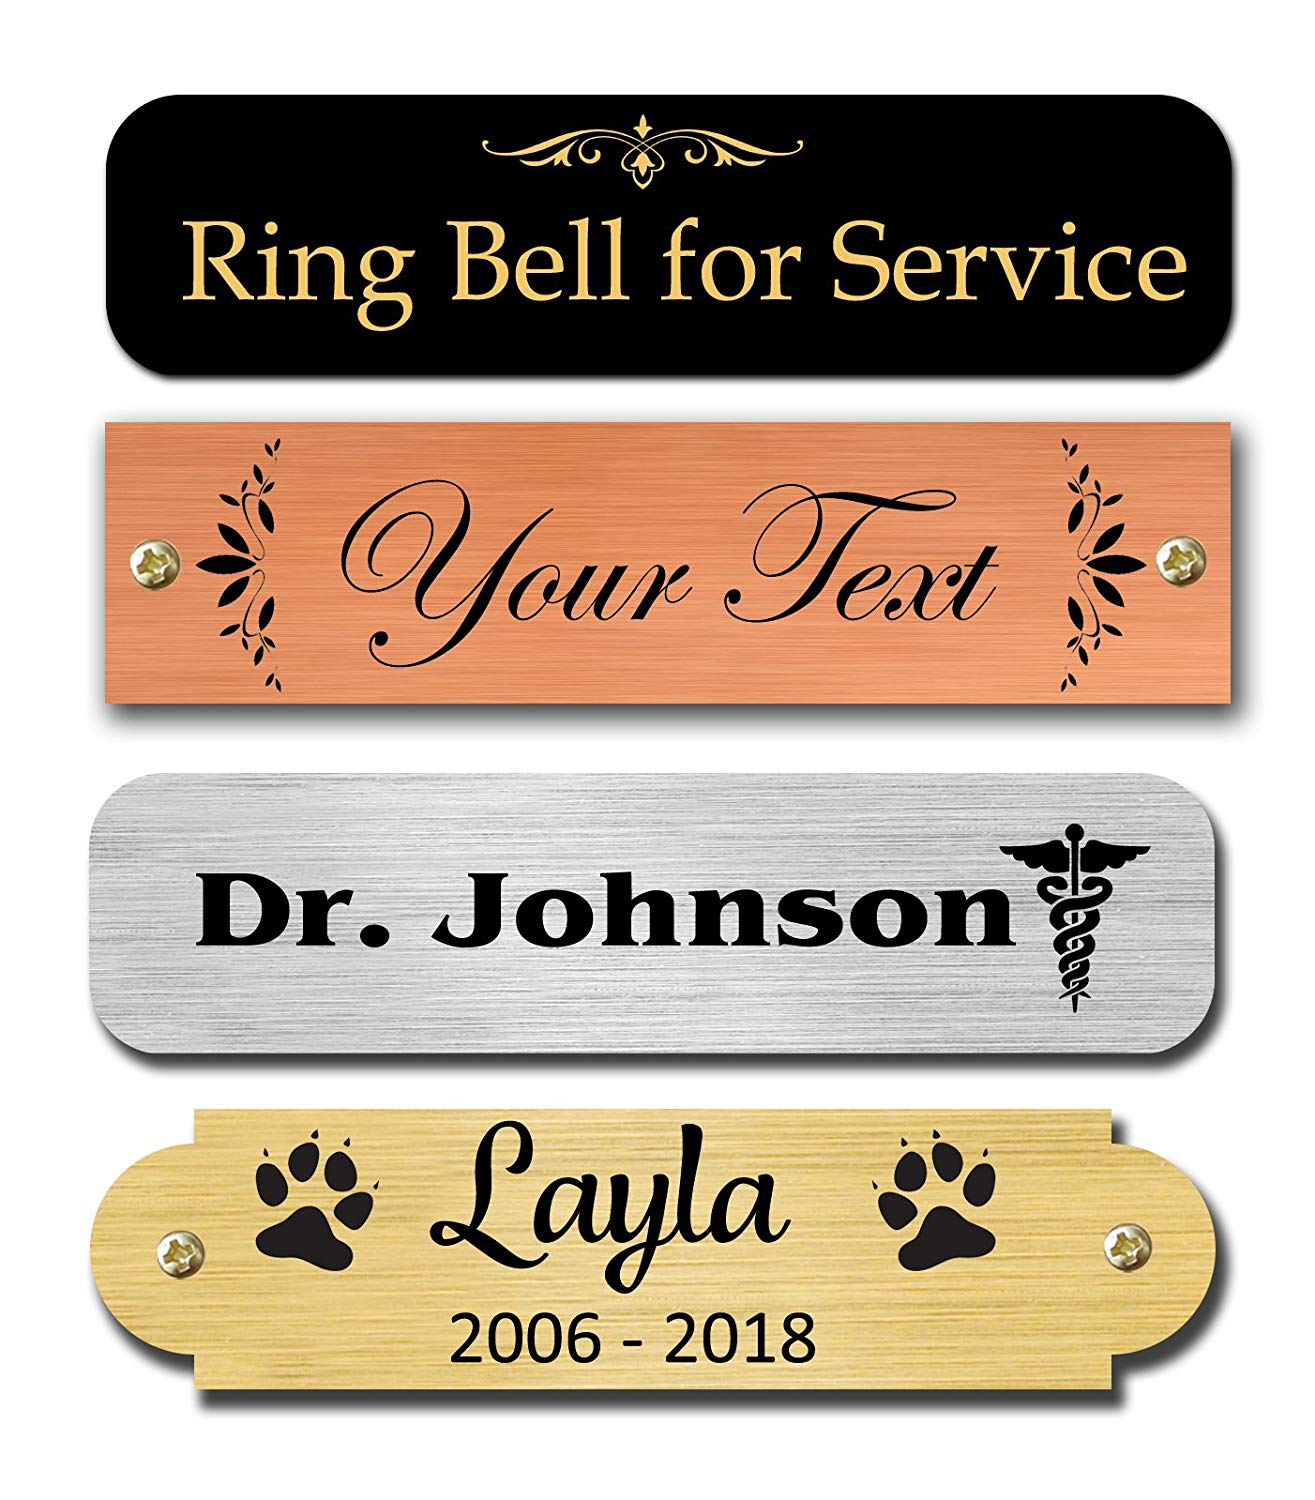 """0.5"""" H x 2"""" W, Brass Nameplates, Metal Plate, Personalized, Custom Engraved Tag, Name Plaque, Square Or Round Corners Made in USA (Satin Brass)"""